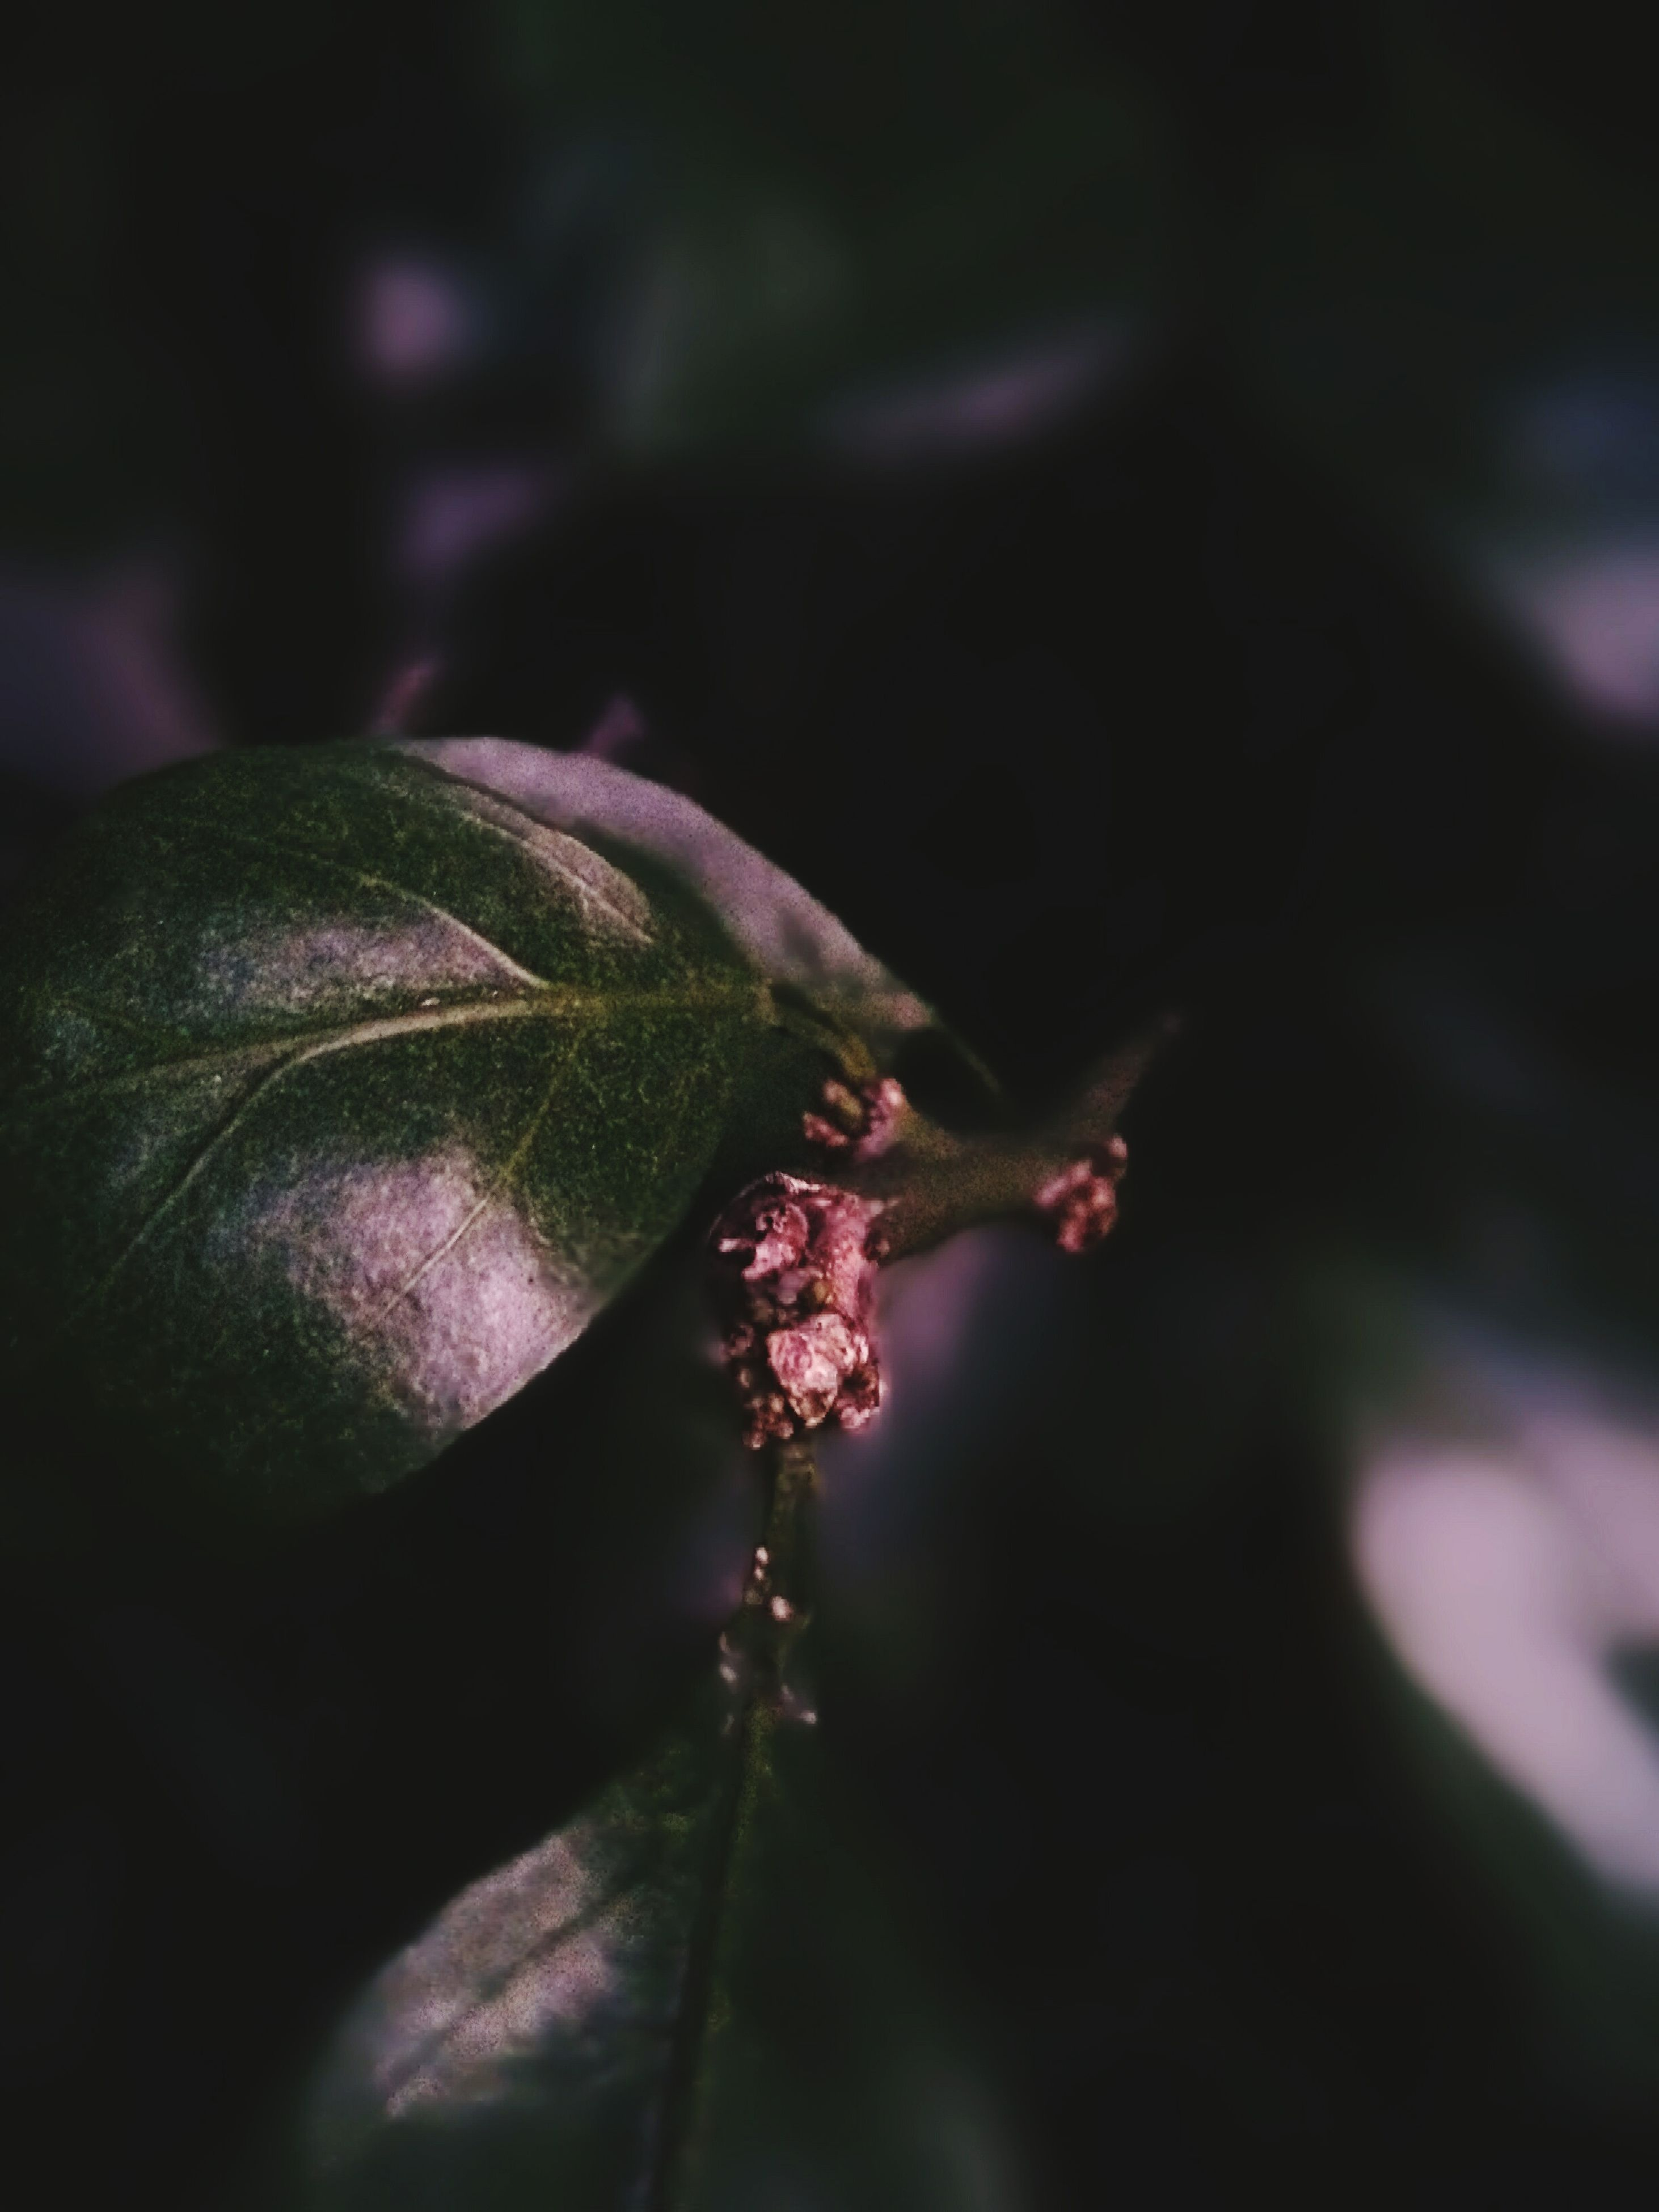 flower, growth, close-up, fragility, plant, focus on foreground, freshness, nature, stem, bud, beauty in nature, selective focus, leaf, new life, beginnings, green color, outdoors, insect, one animal, petal